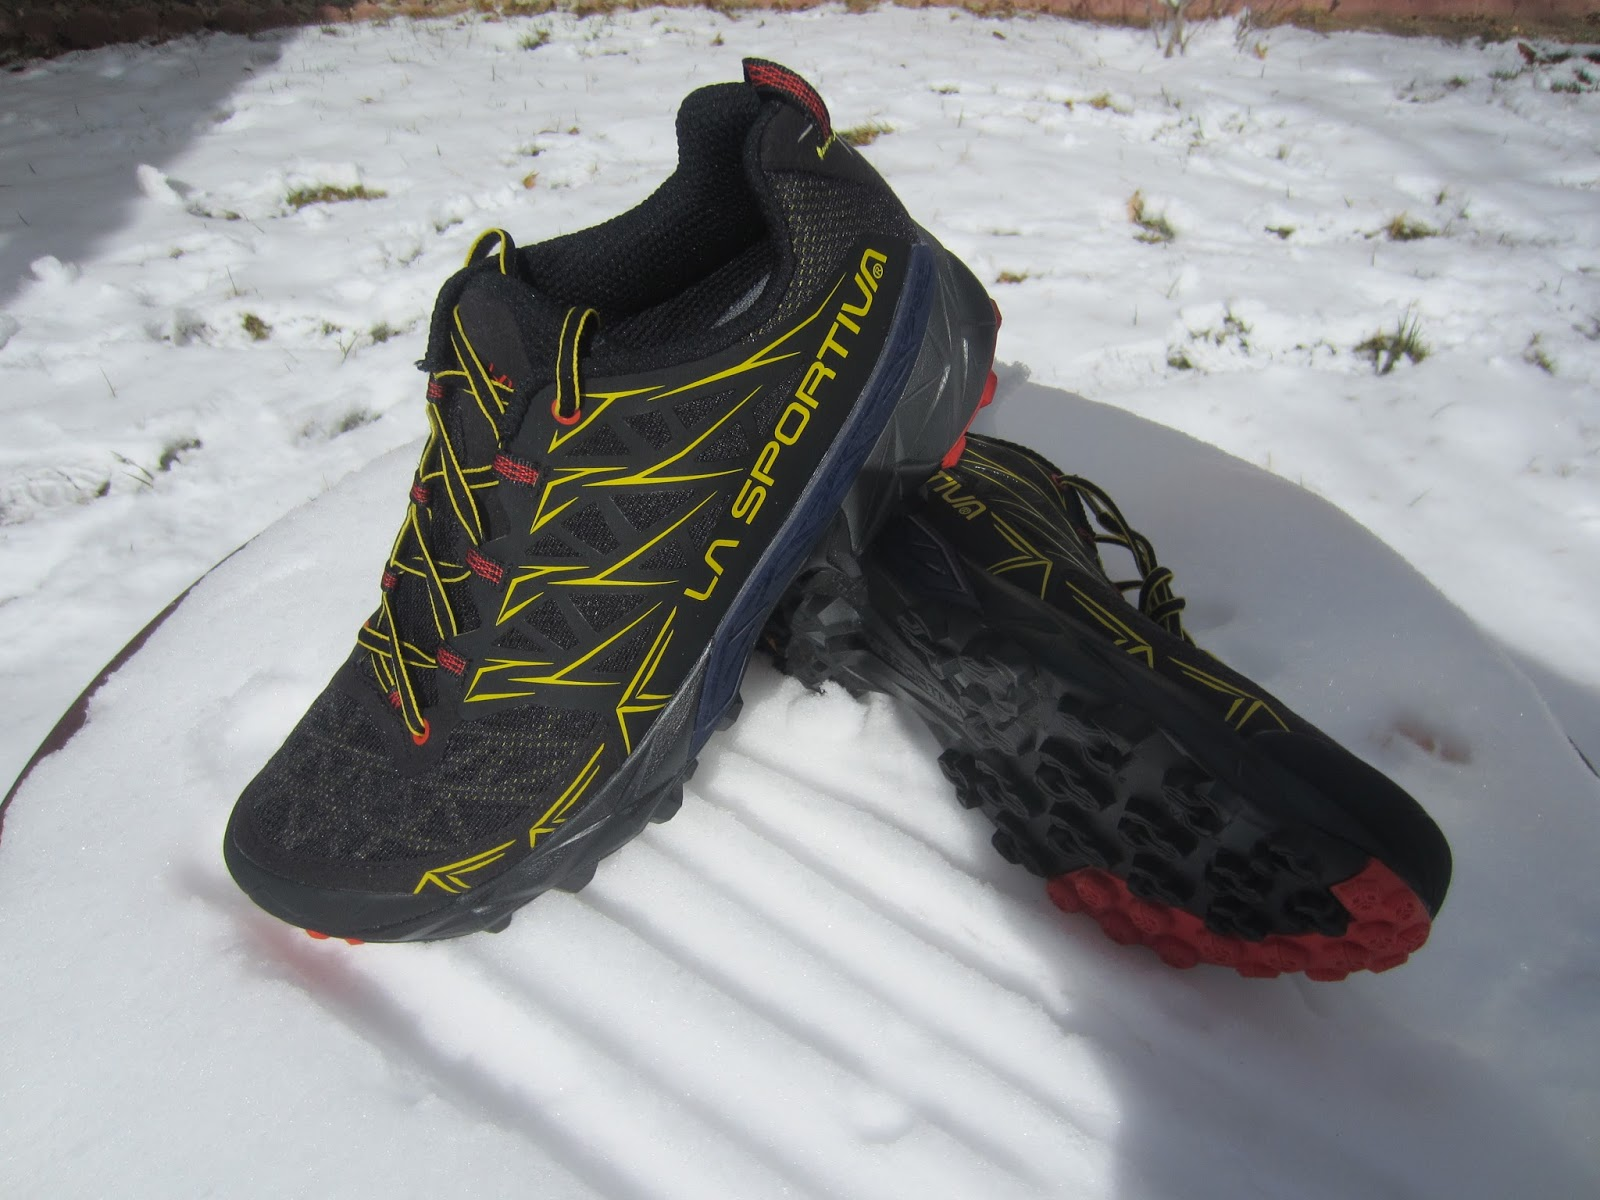 509988c4285 Road Trail Run  La Sportiva Akyra Review - A Trail Running Hiking Hybrid